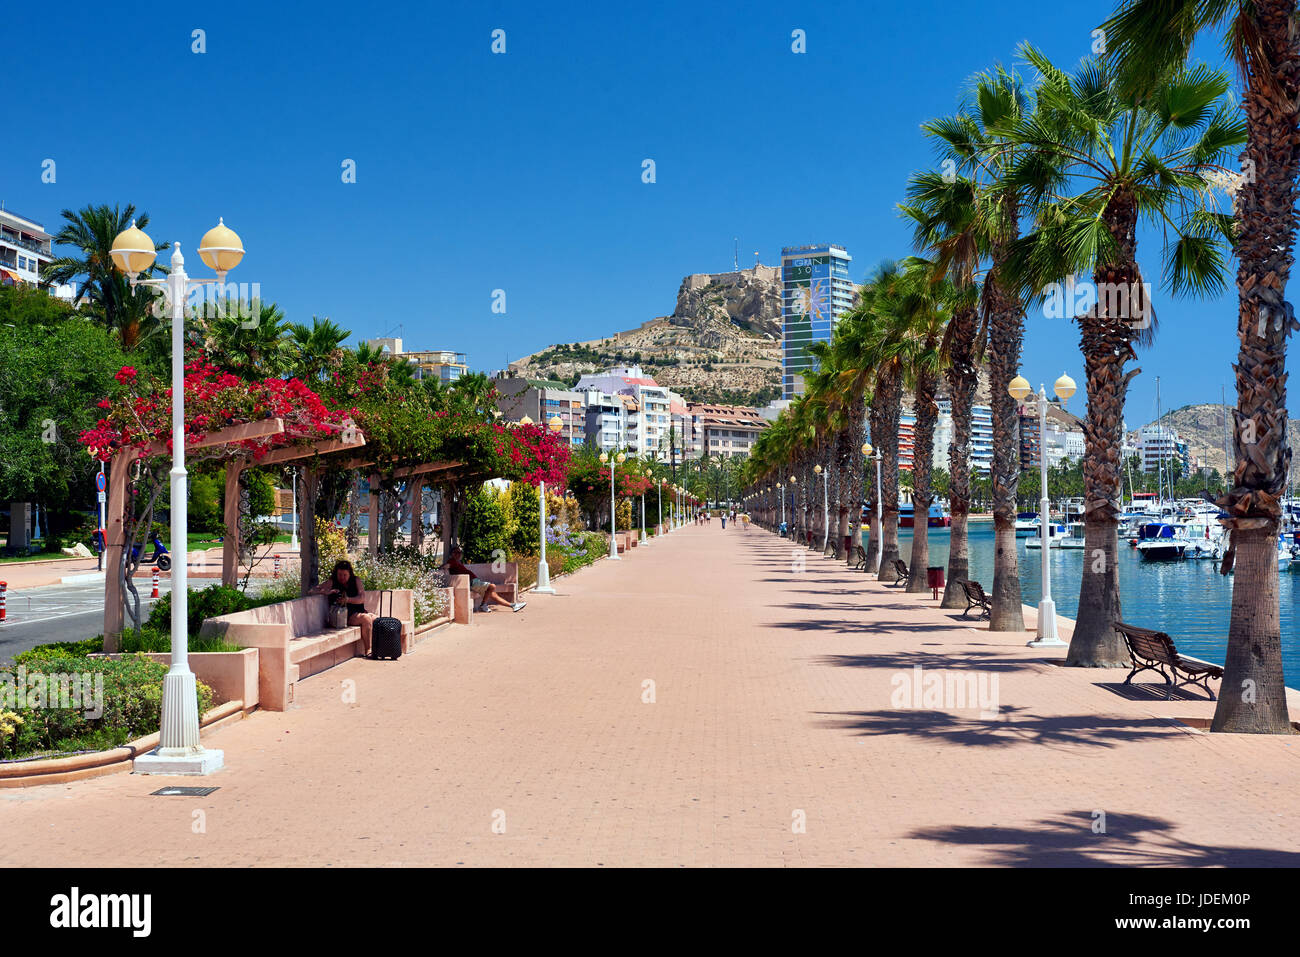 Alicante, Spain-June 20, 2017: Palm-lined seafront promenade in sunny summer day. It is one of the most lovely promenades - Stock Image